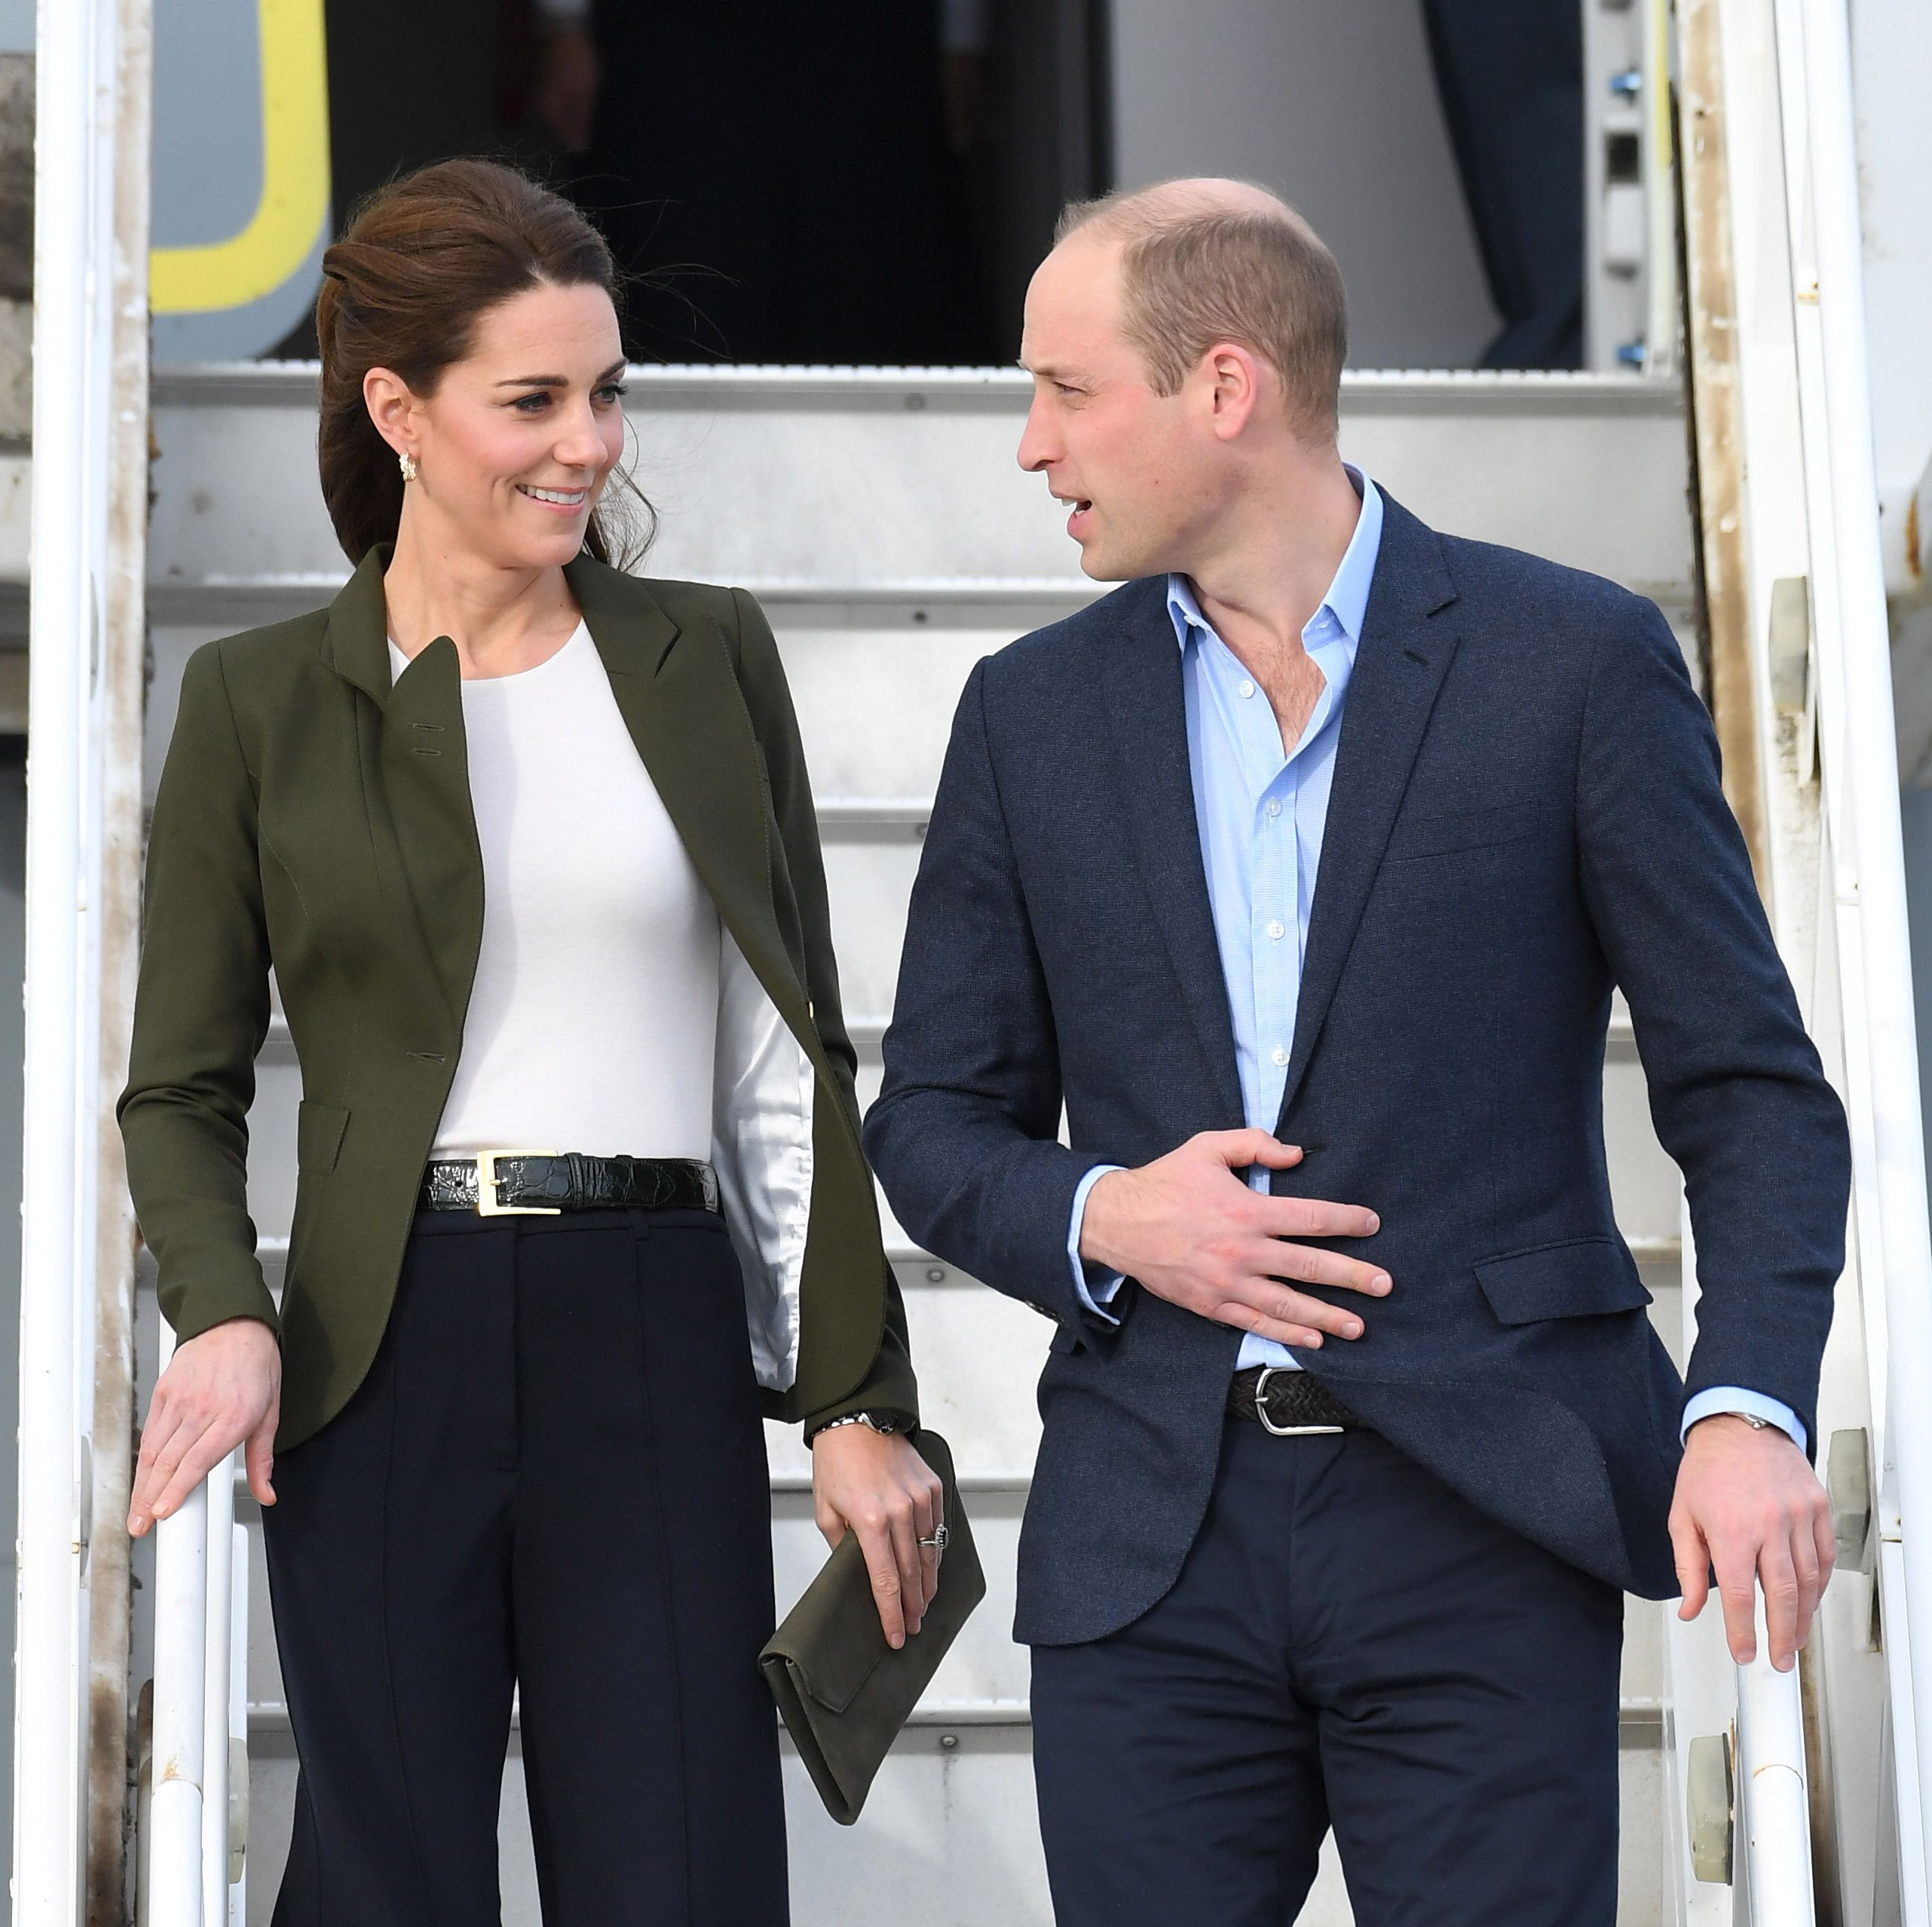 Prince William Just Flirtatiously Teased Kate Middleton About Her Outfit In Public